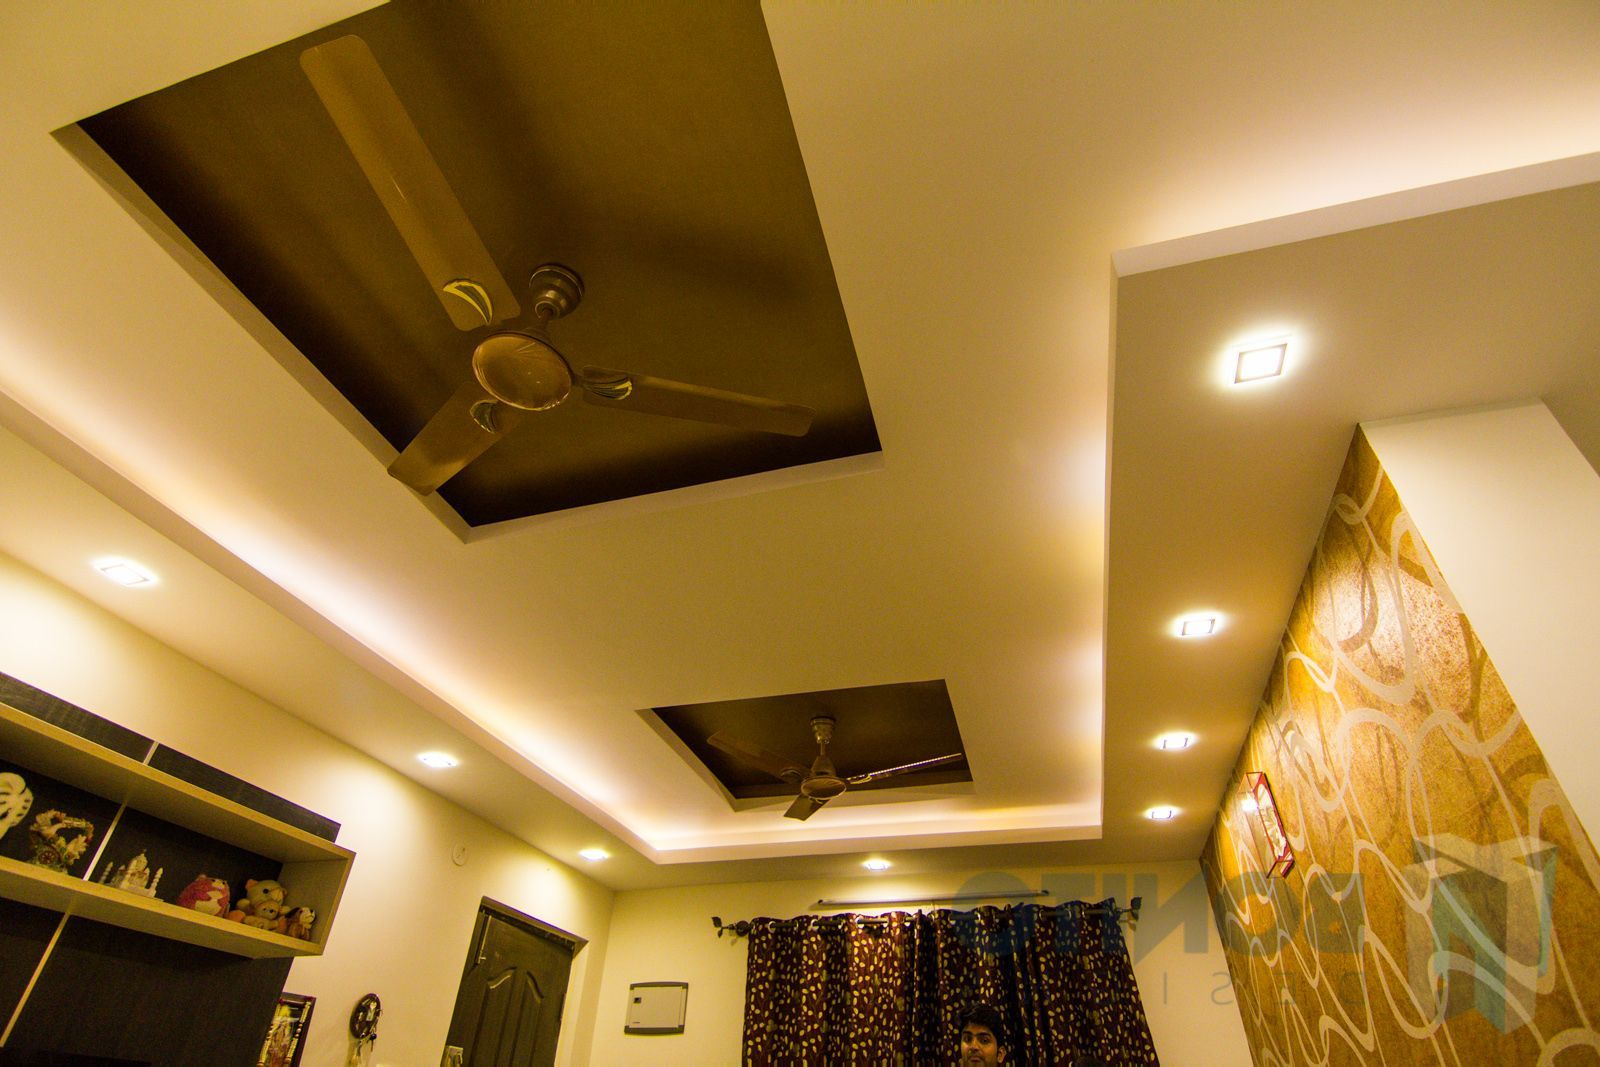 Following are some tips on how to choose the best ceiling fan for your space. Pop Ceiling Design For Hall With 2 Fans New Blog Wallpapers Falseceilingdesigncouch False Ceiling Design Ceiling Design Modern Pop Ceiling Design